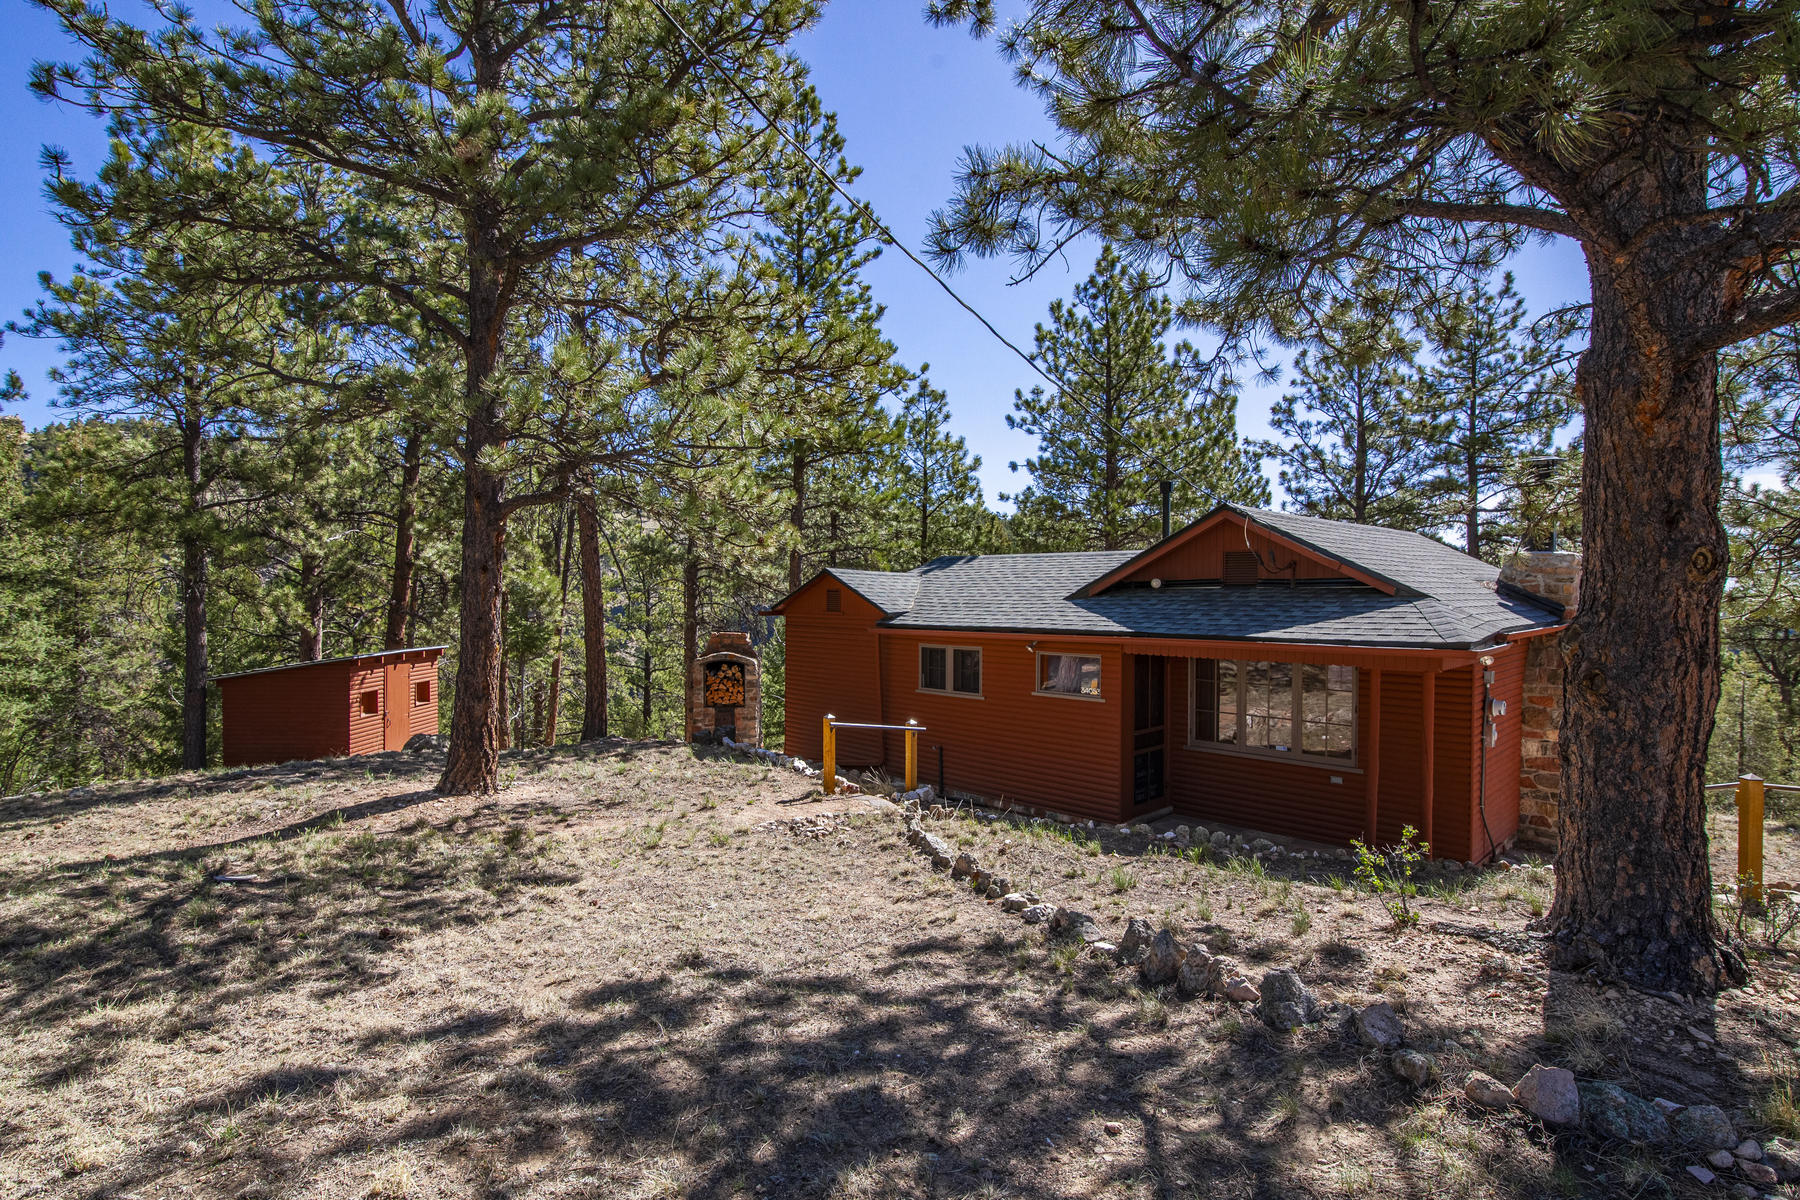 Single Family Homes for Sale at Charming Mountain Cabin! 34053 Eagle Ln, Pine, Colorado 80470 United States